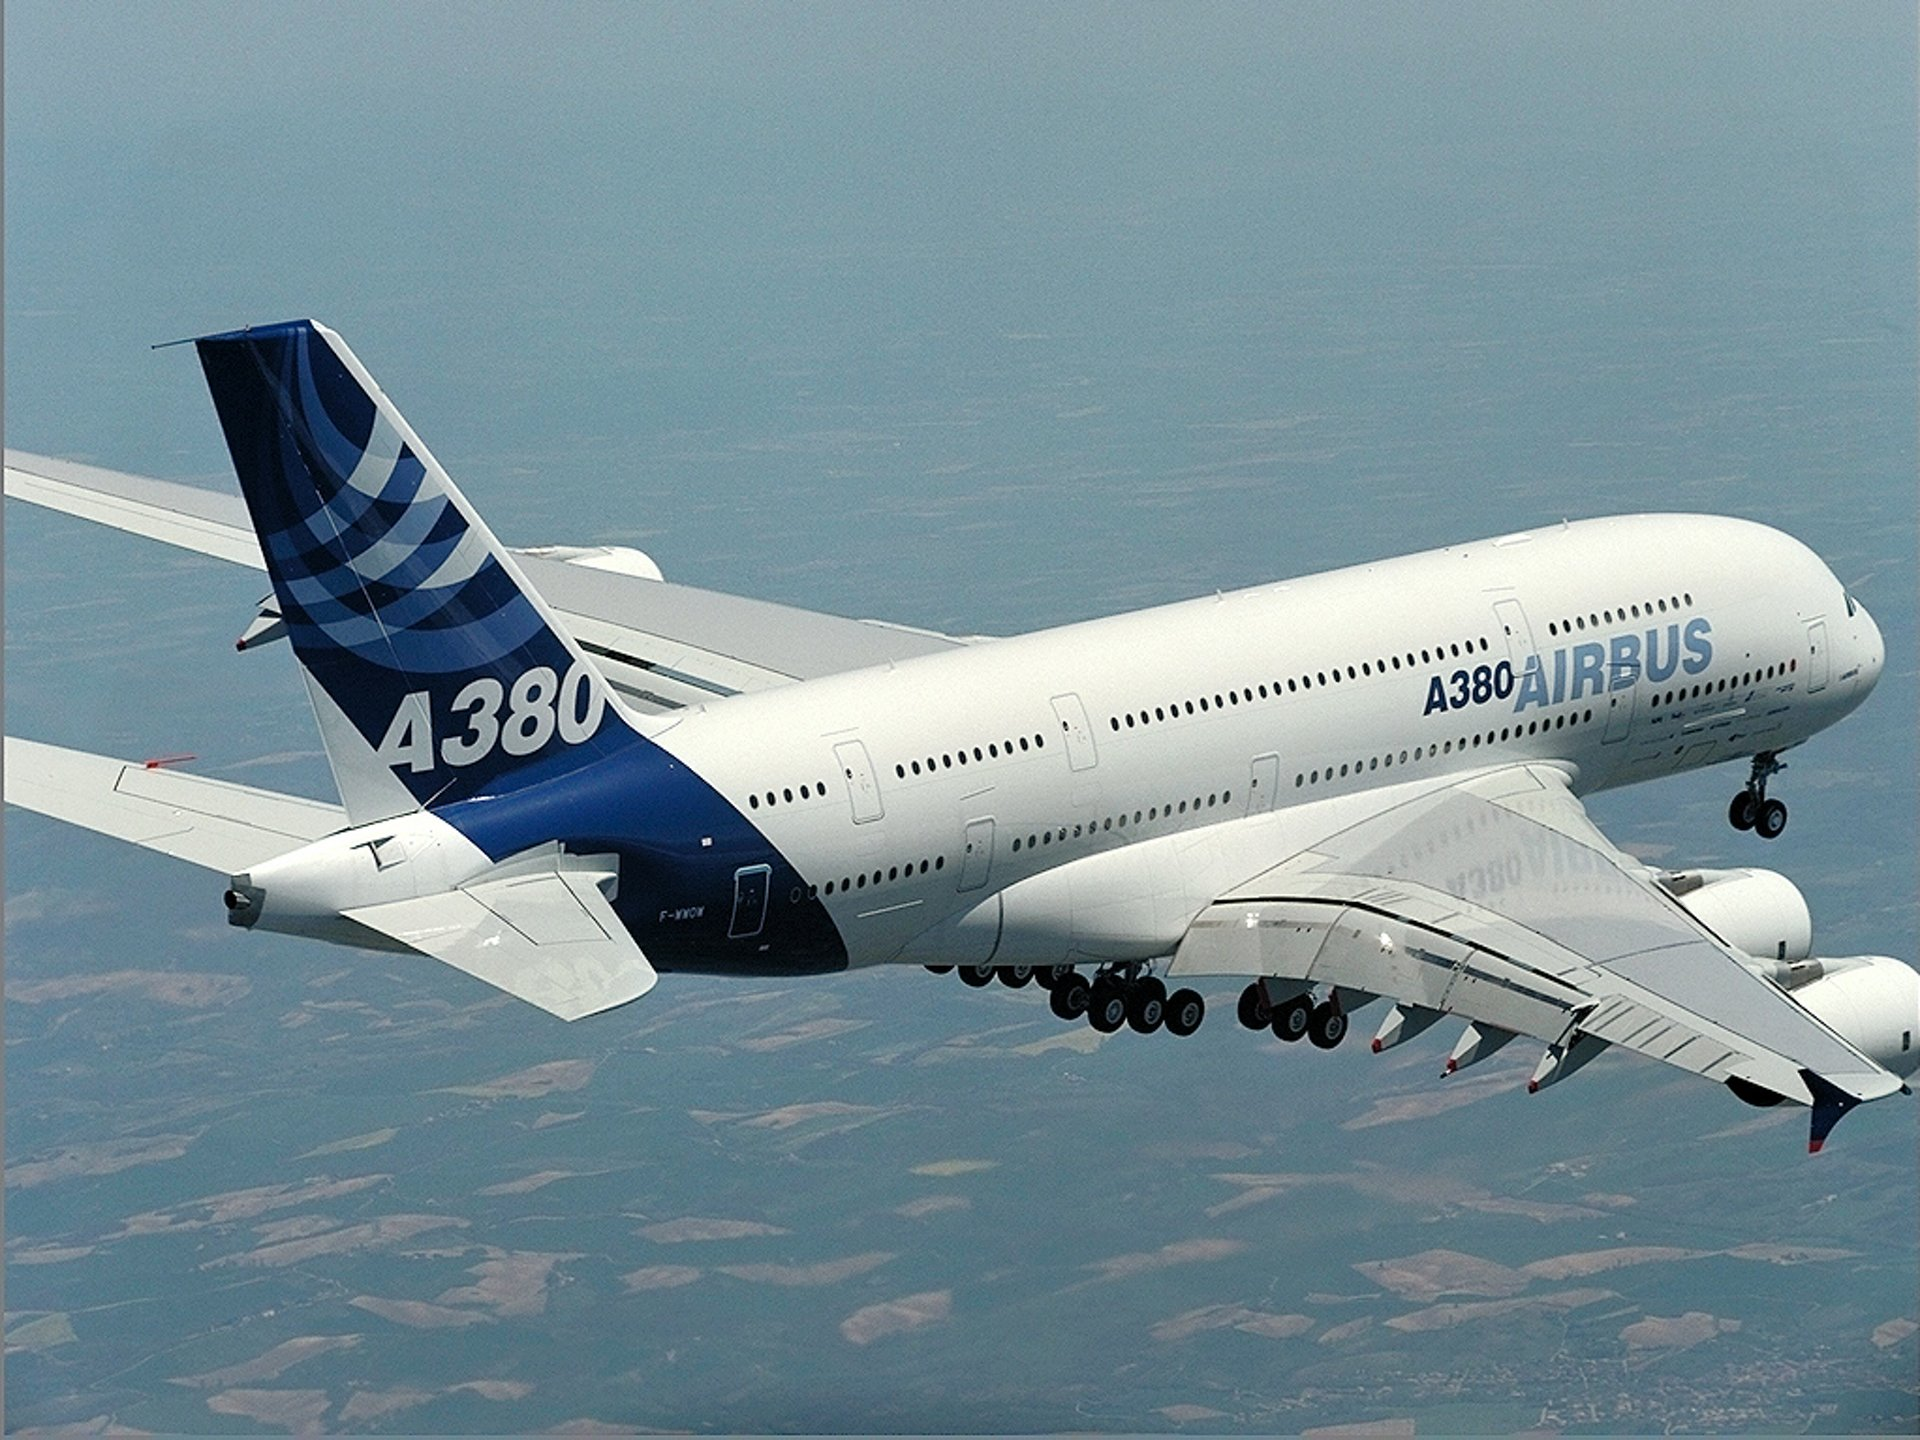 With the same basic cockpit layout and operating procedures as the A320 and A330/A340 Families, the A380 shares significant commonality with Airbus' other fly-by-wire aircraft